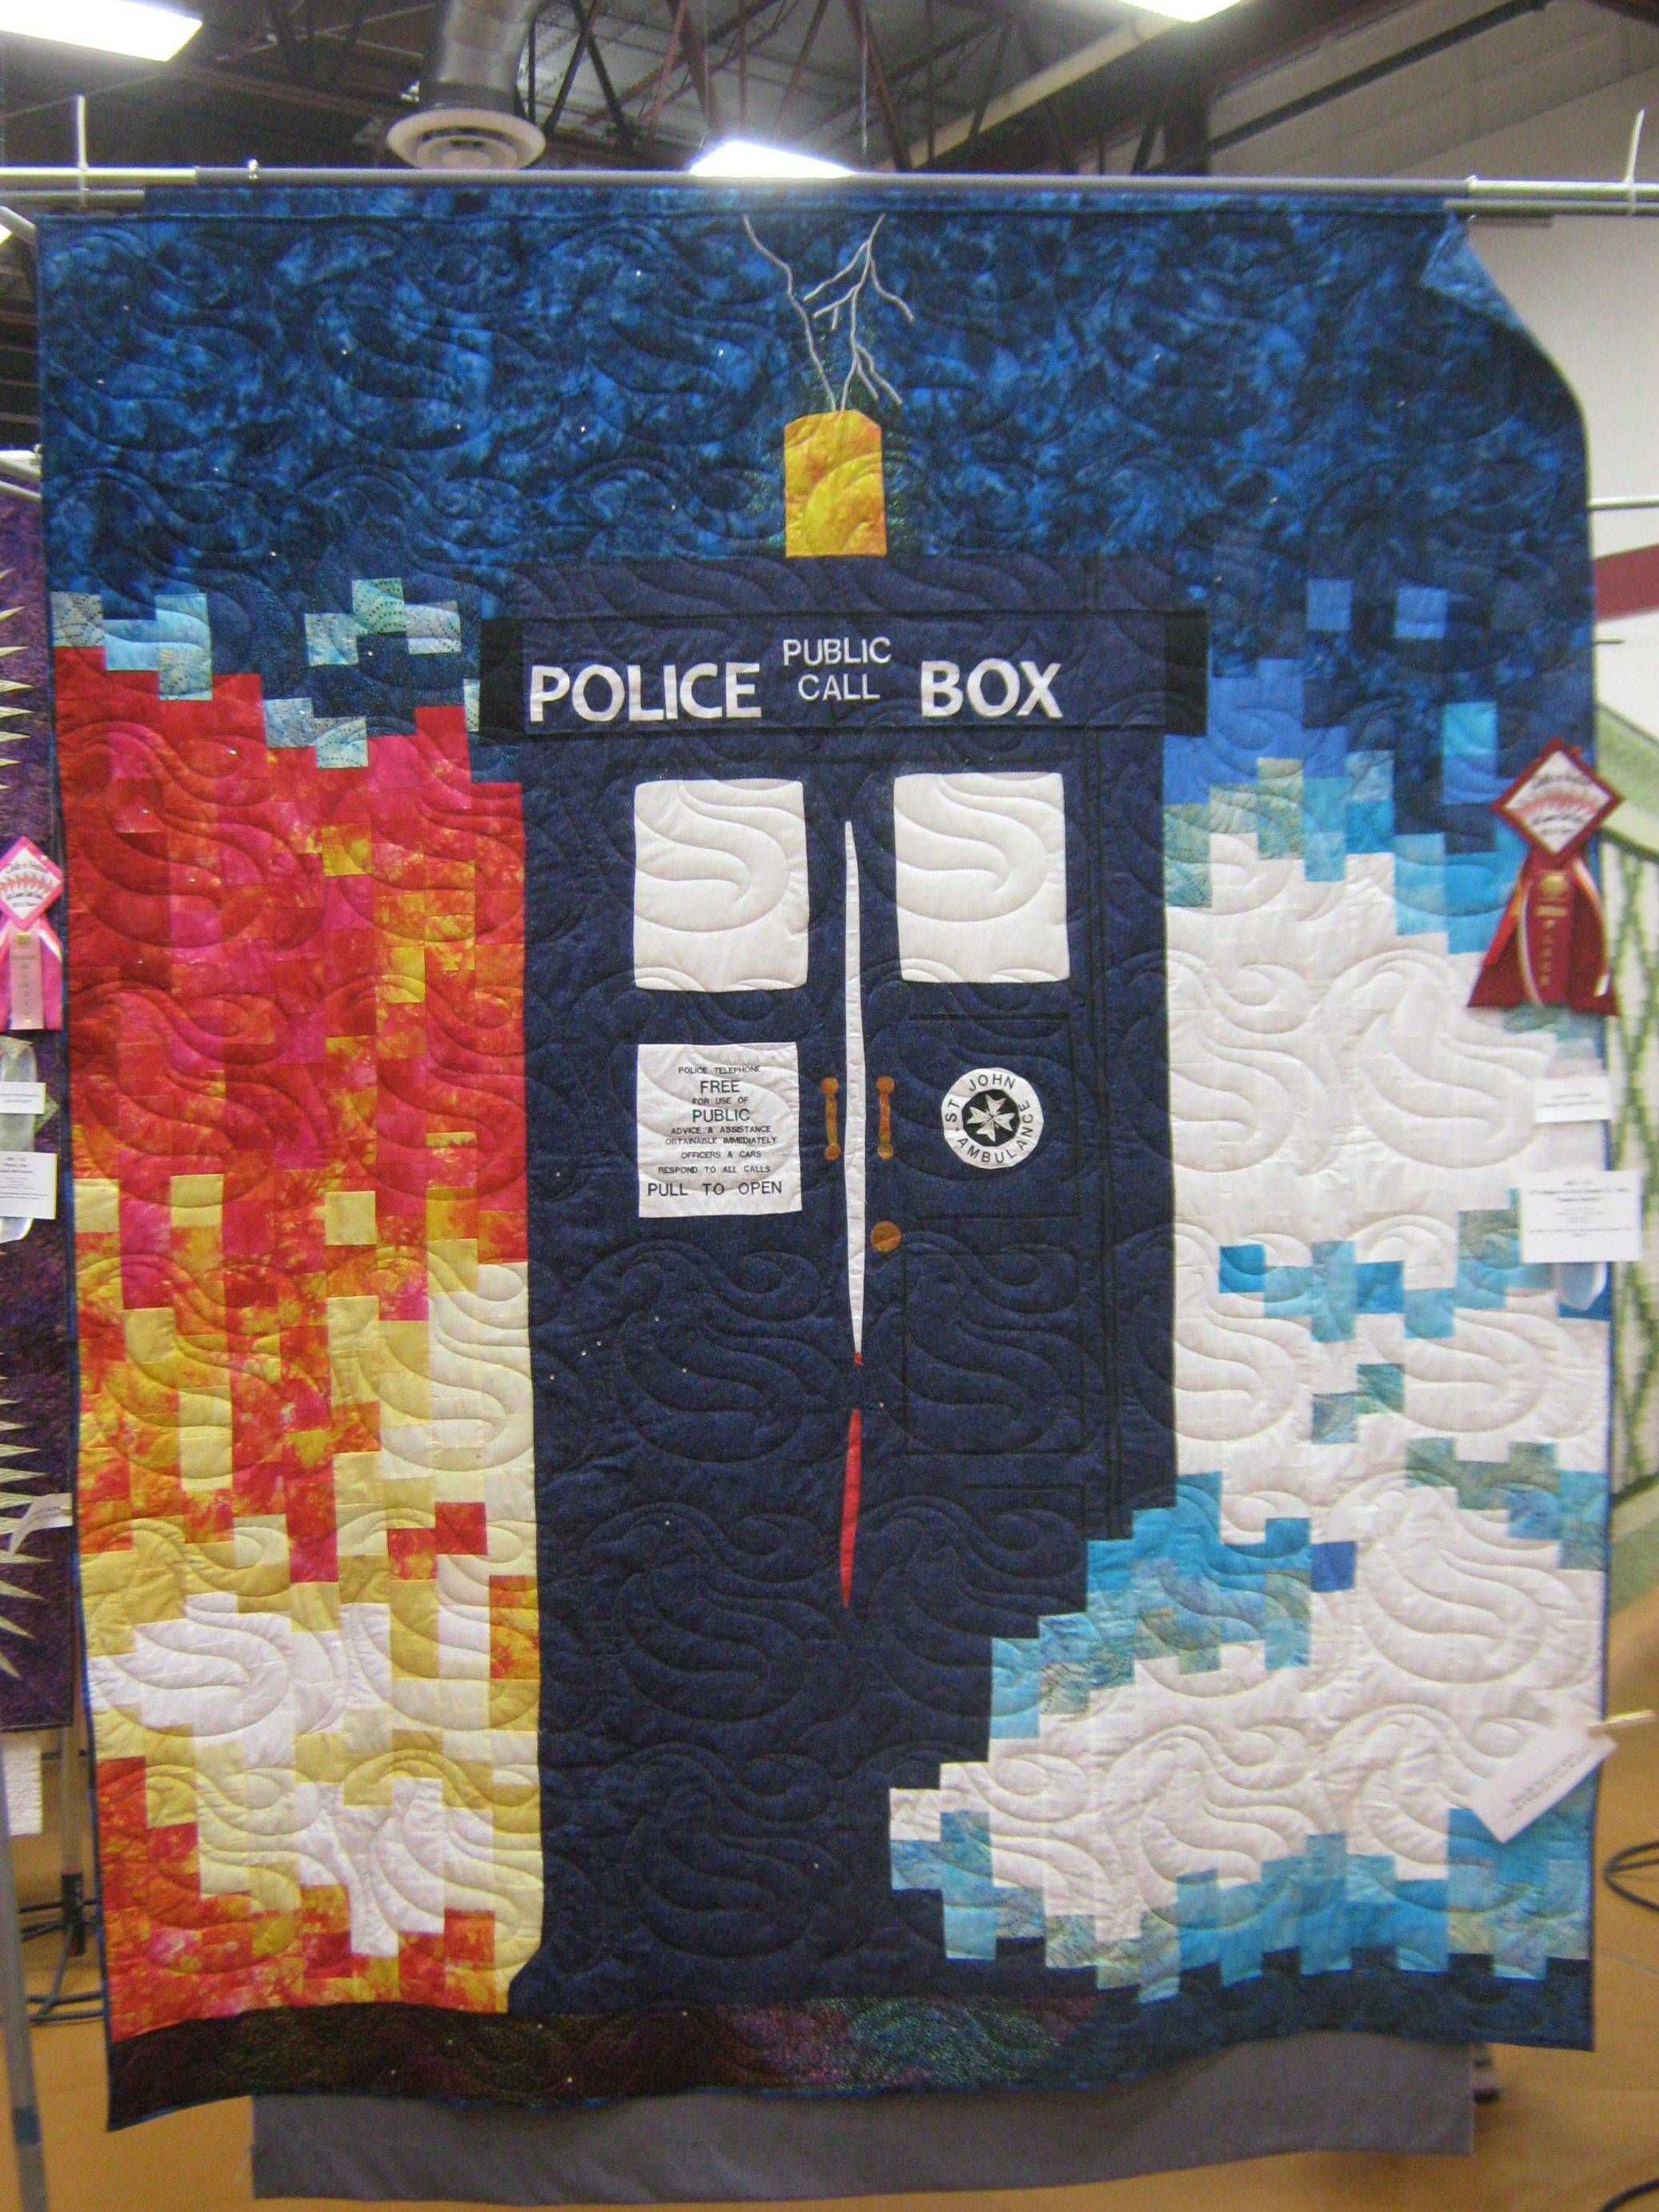 a12b0dbb Doctor Who quilt!!!! Holy shiz. I haven't been inspired to quilt in a  really long time. This just may get me back on the sewing machine.